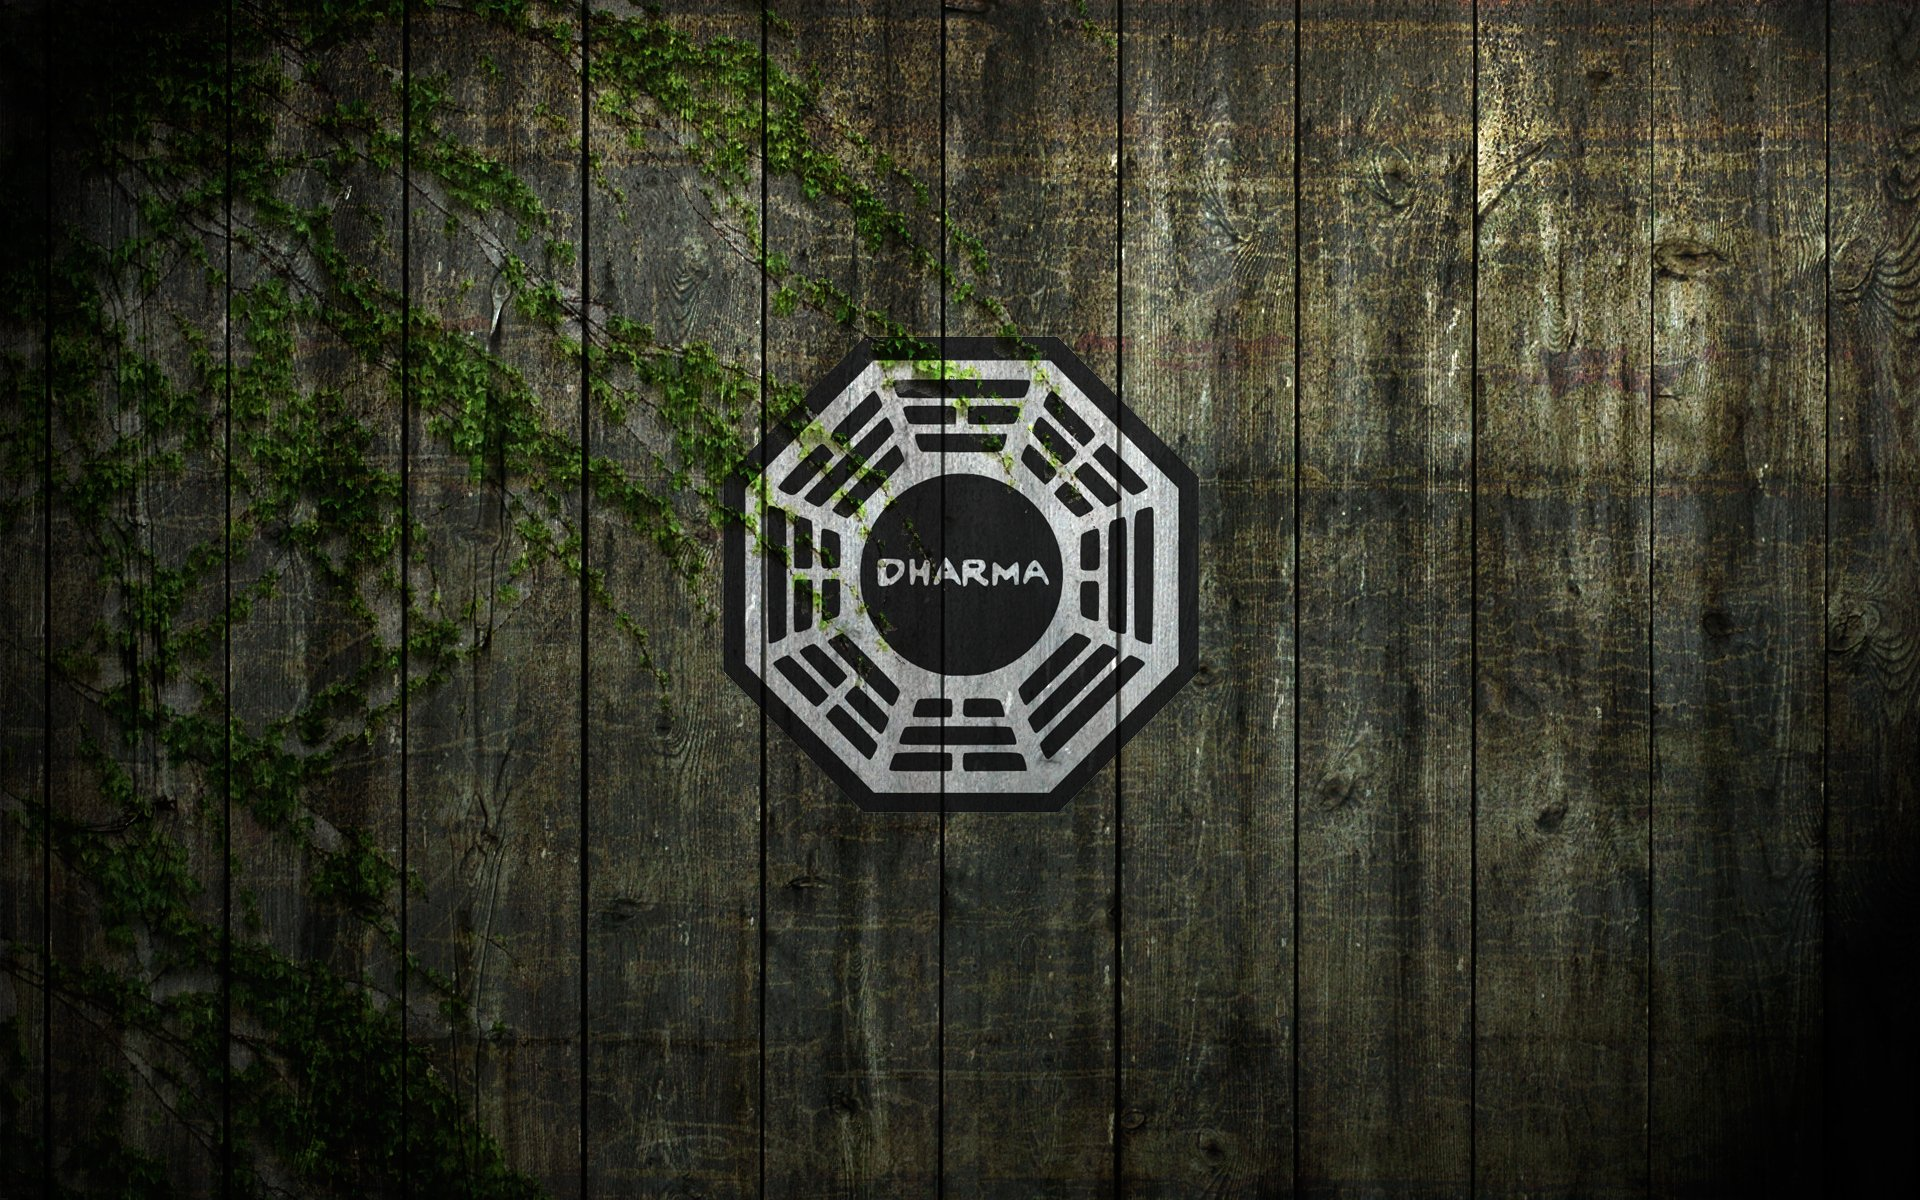 Dharma Initiative logo from Lost by kyle p   Desktop Wallpaper 1920x1200